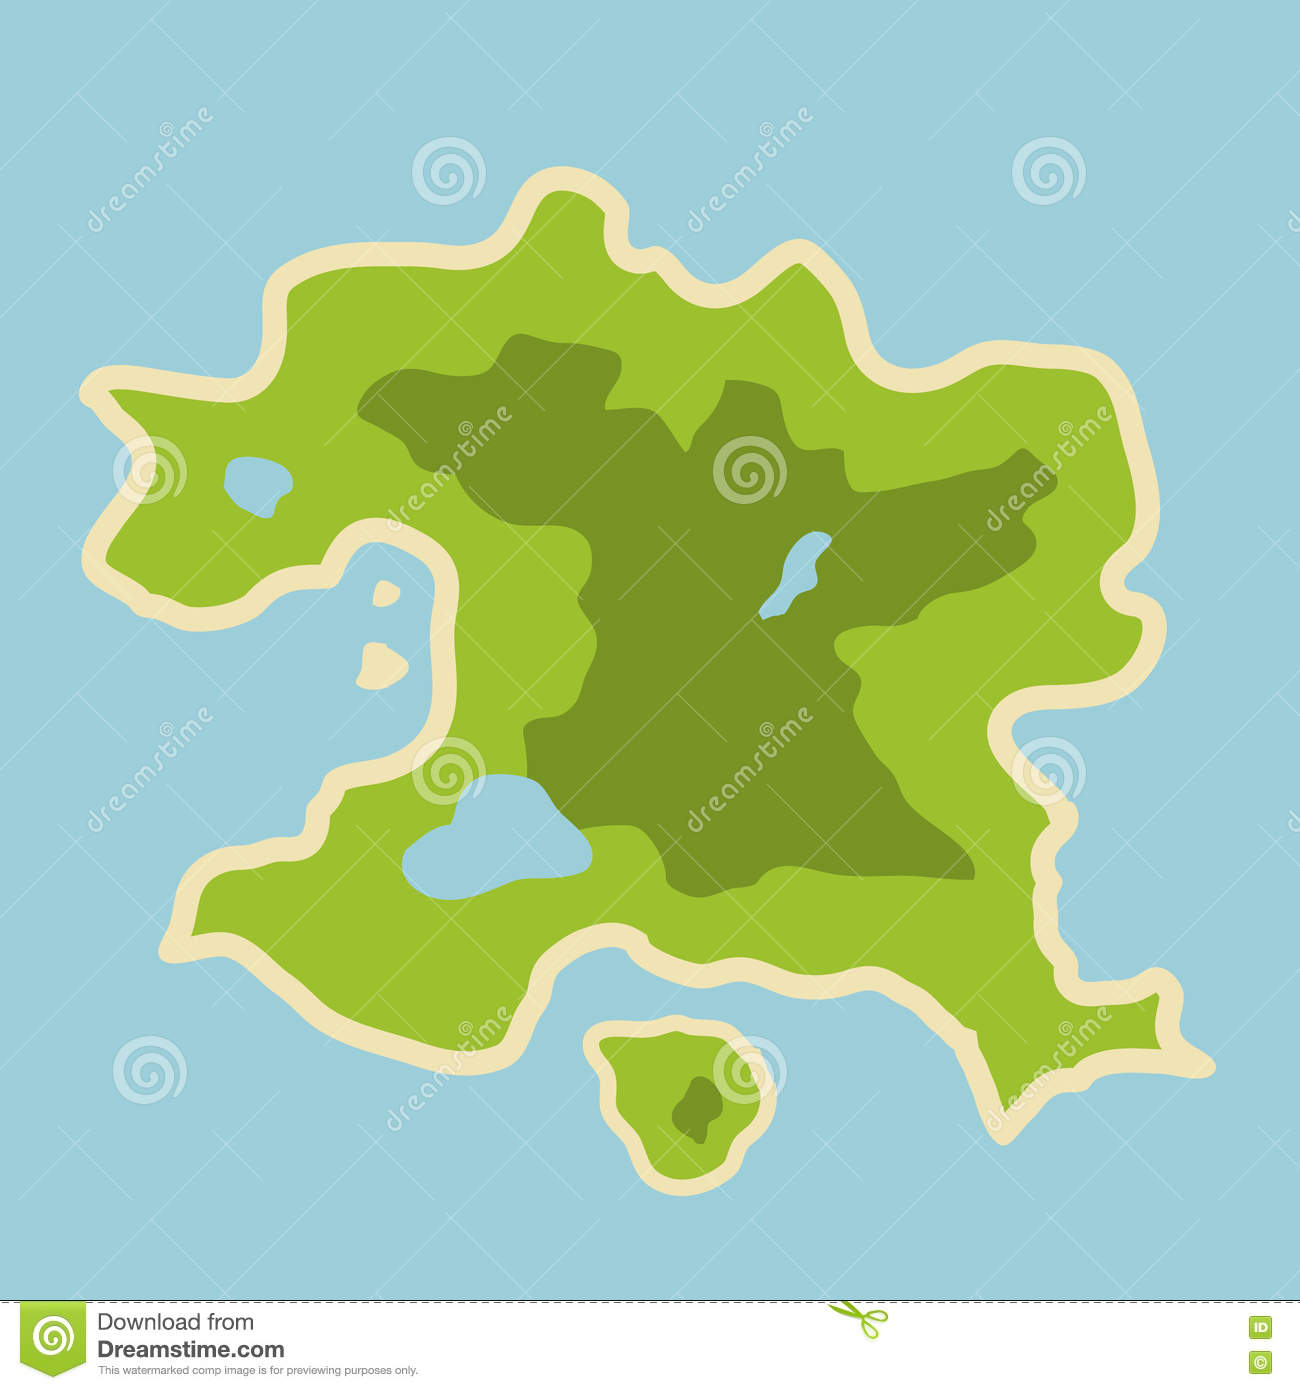 Flat Illustration Of Fantasy Map Of Fictional Island In ...